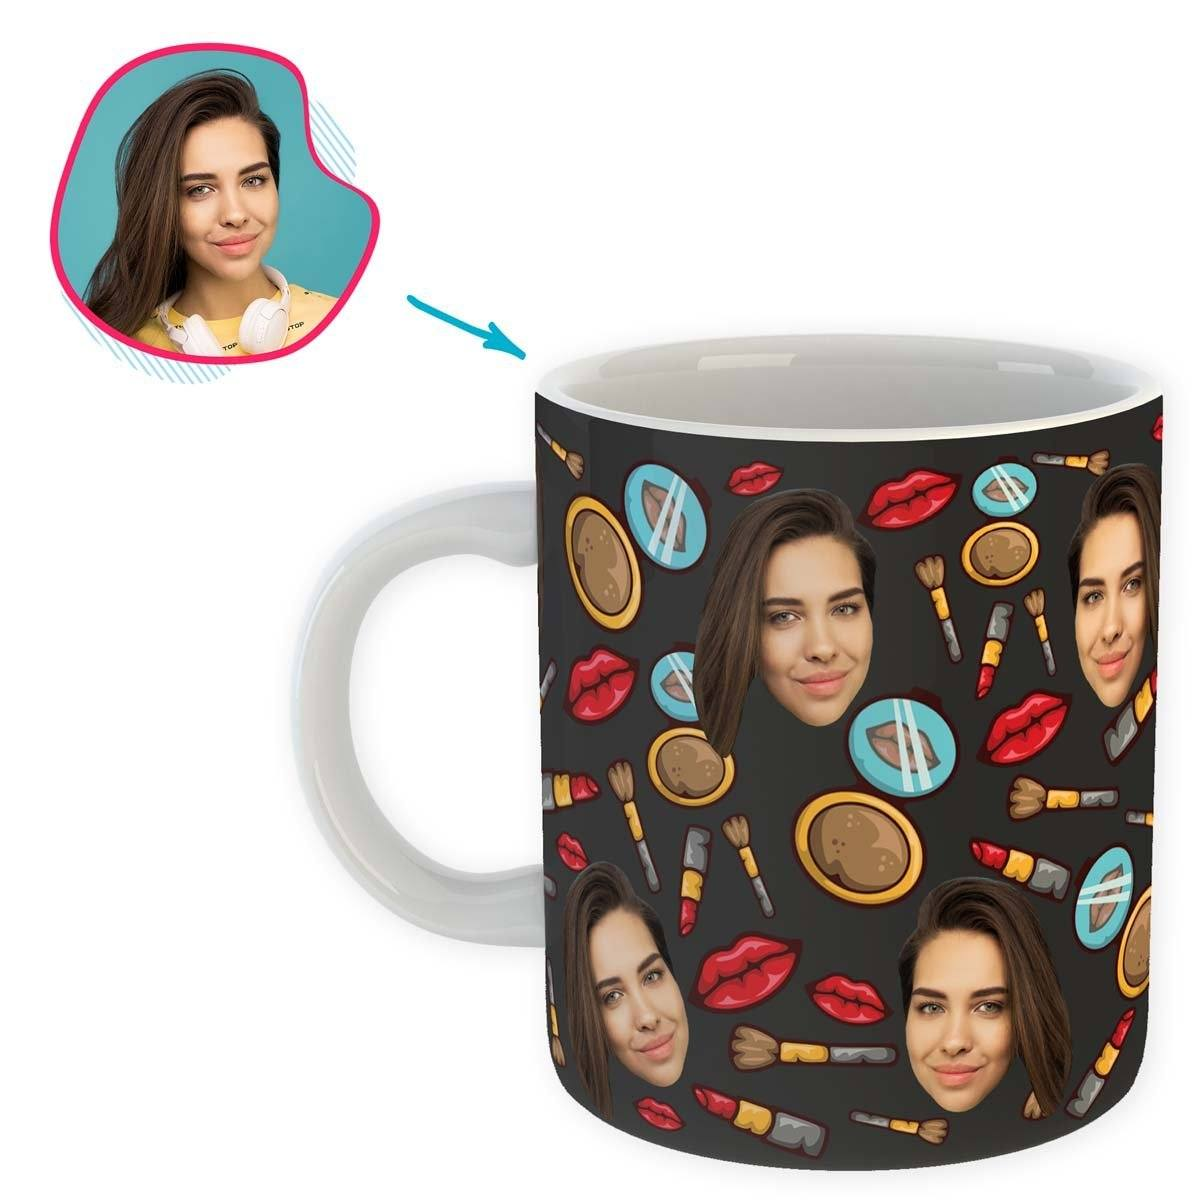 Dark Makeup personalized mug with photo of face printed on it